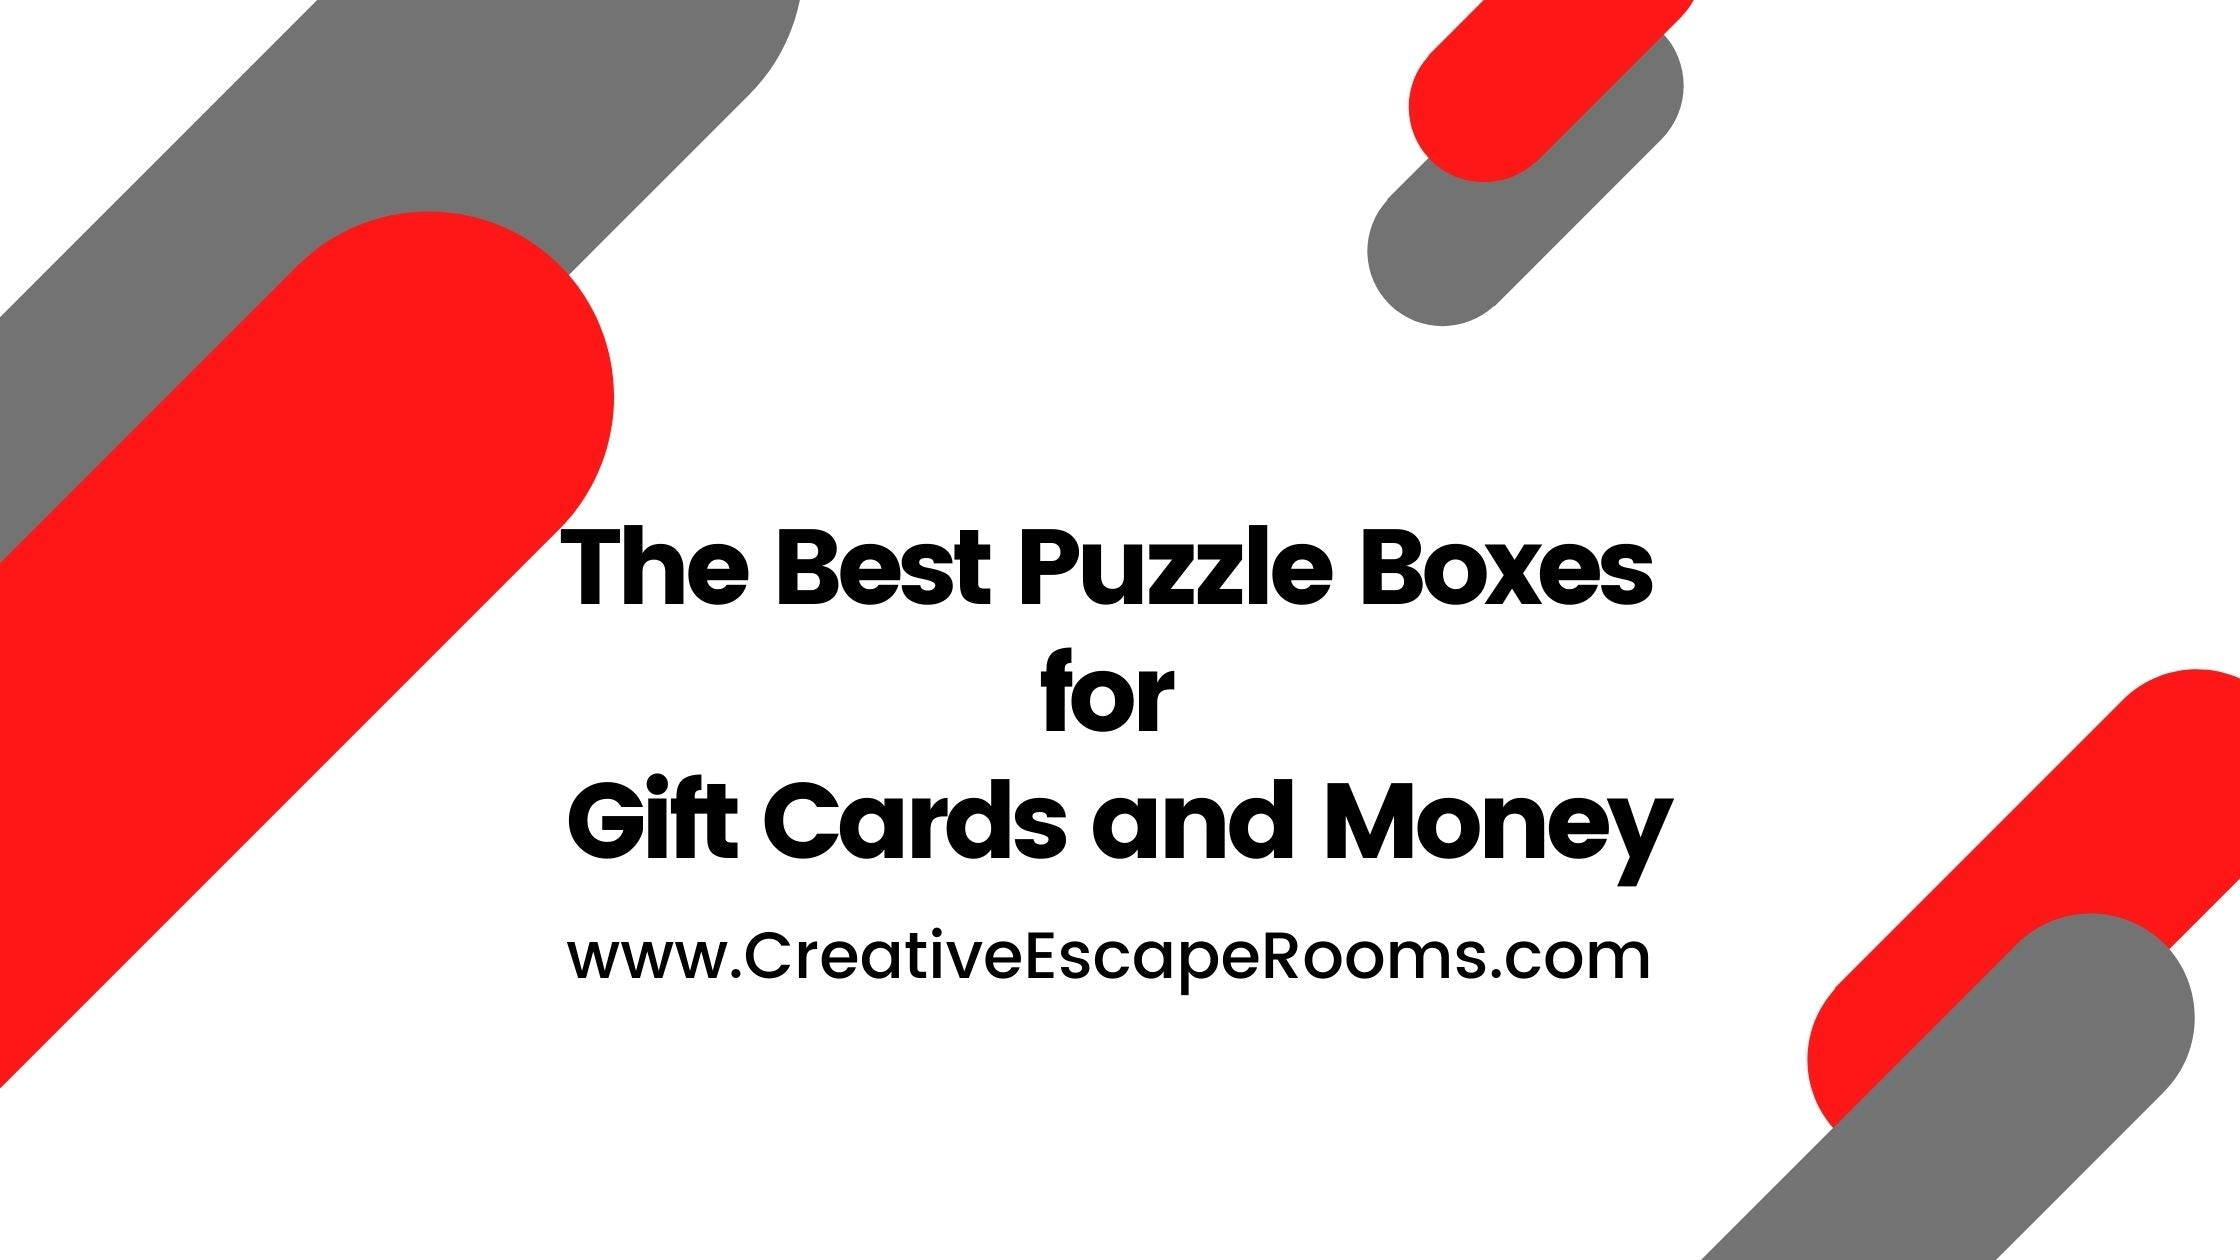 The Best Puzzle Boxes For Gift Cards and Money